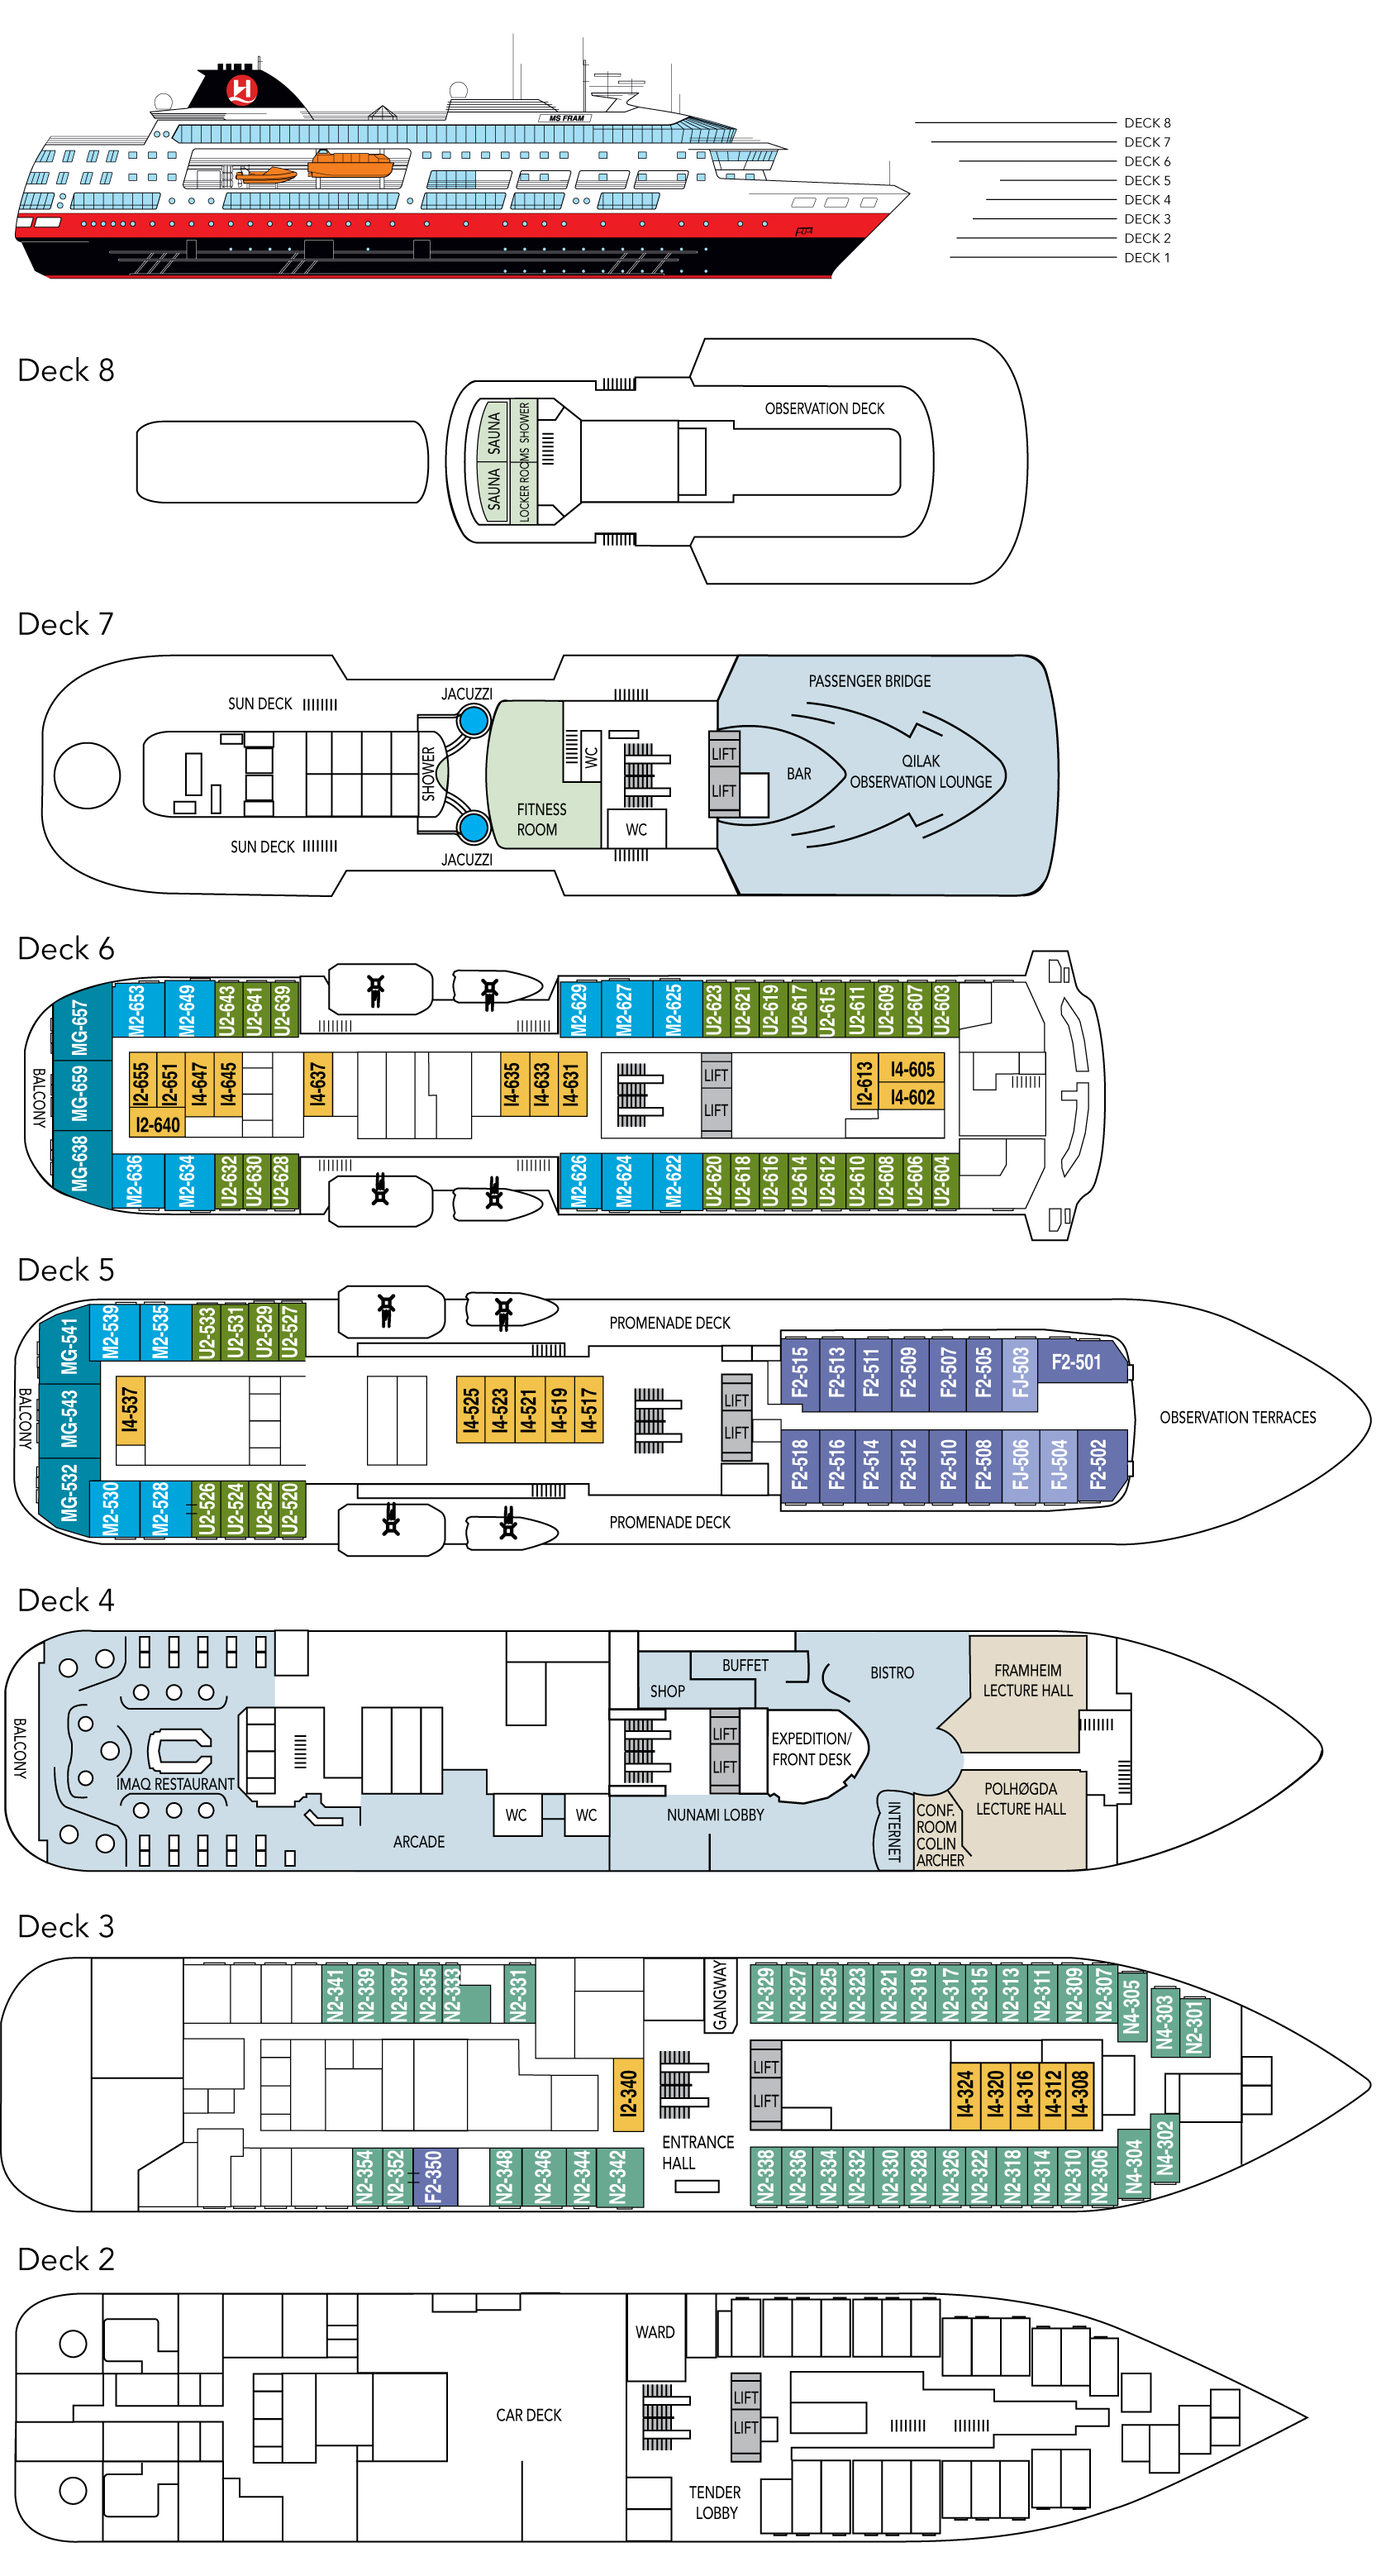 Cabin layout for MS Fram